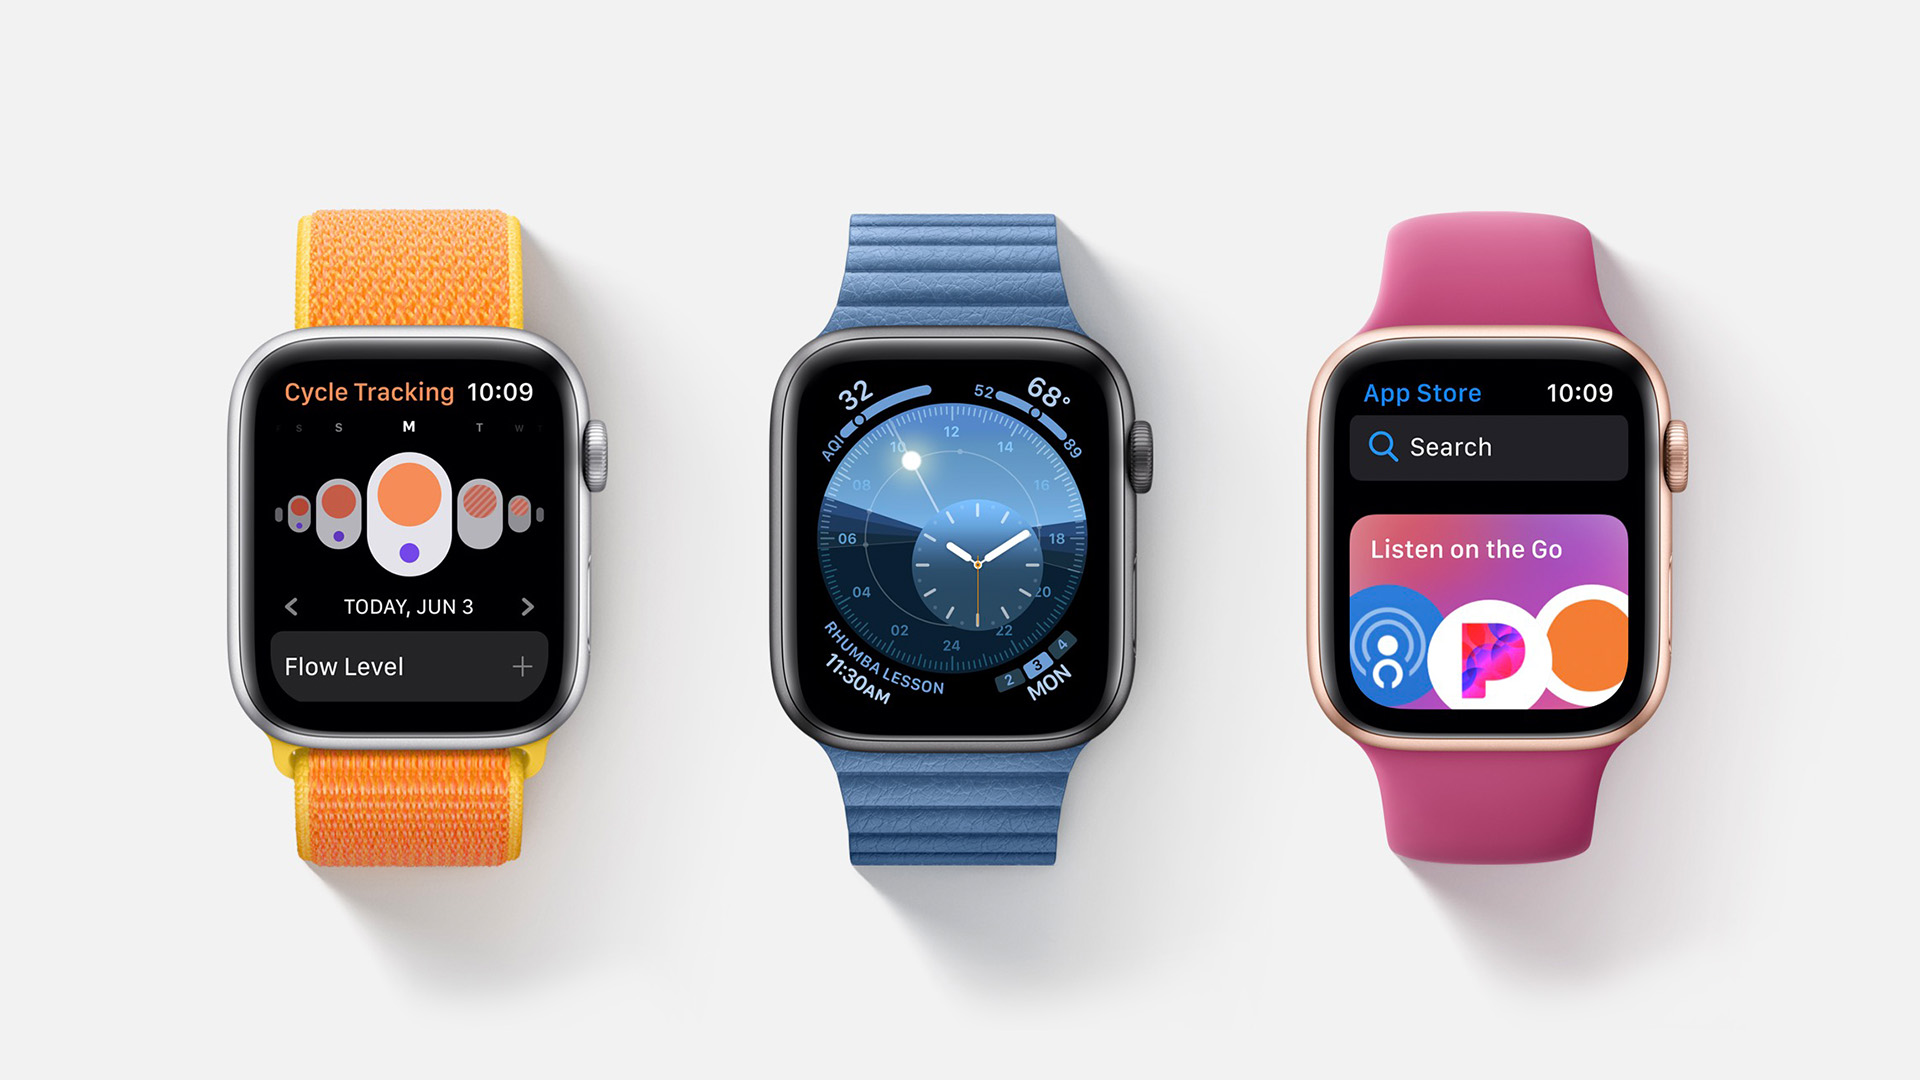 Apple-Watch-and-watchOS.jpg (1920×1080)